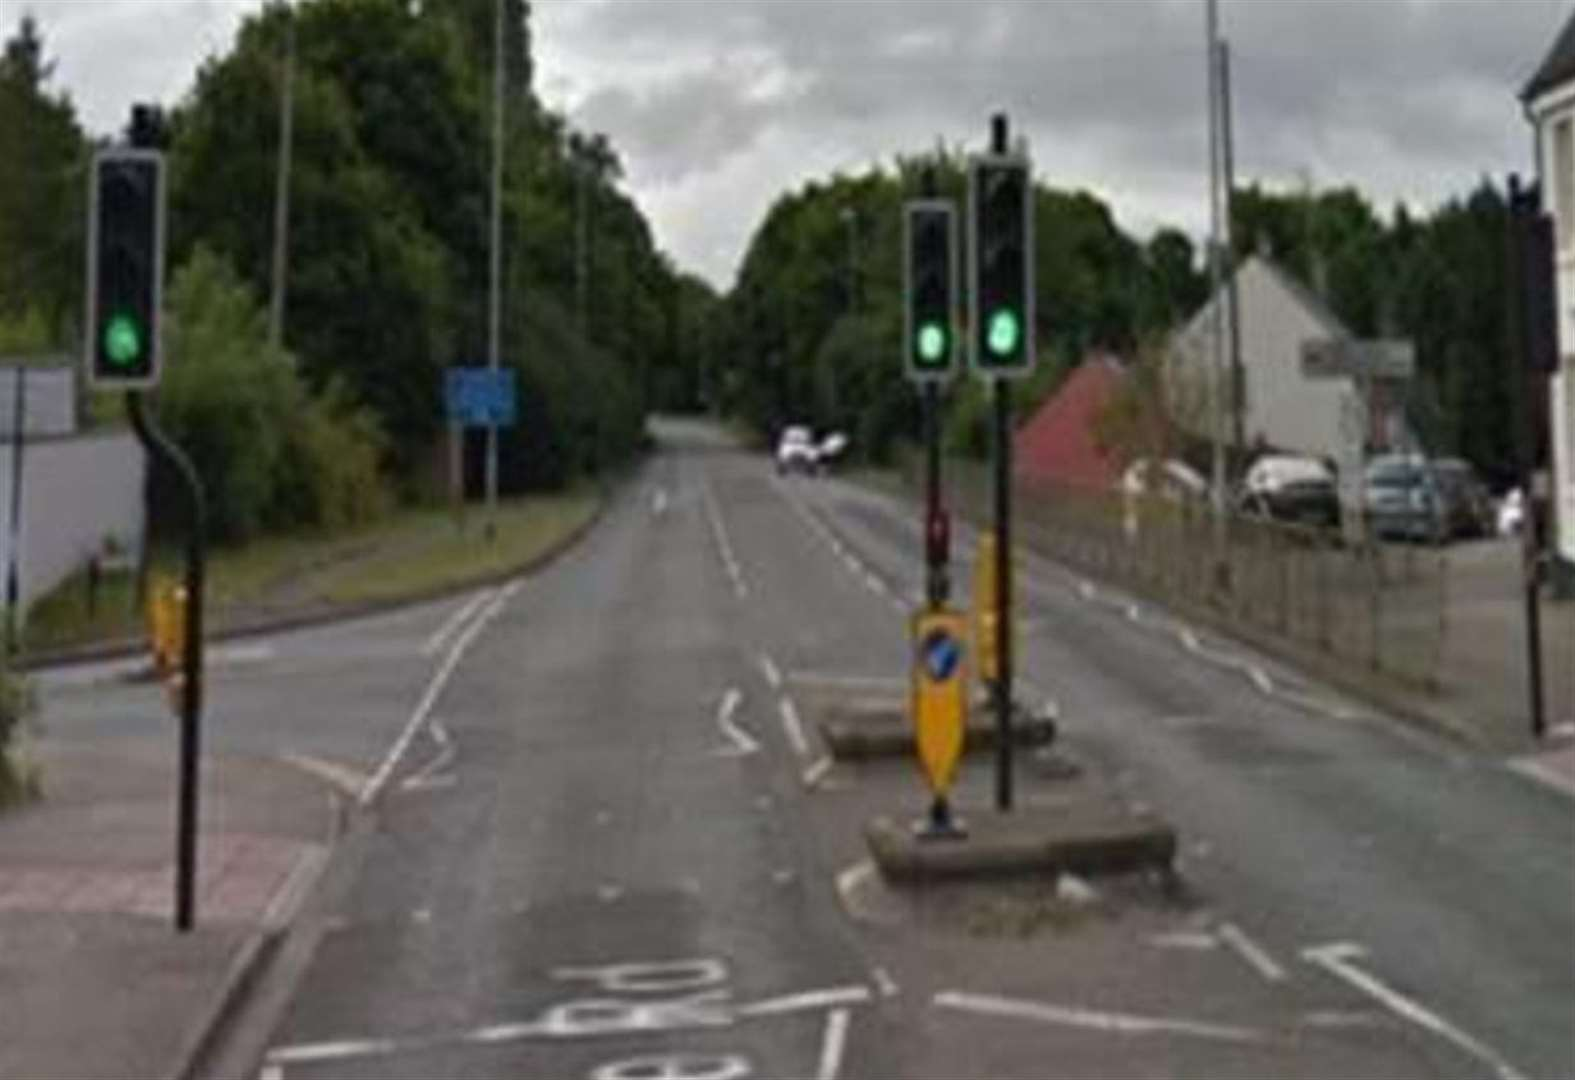 Busy A1307 junction to have 'safer' traffic lights